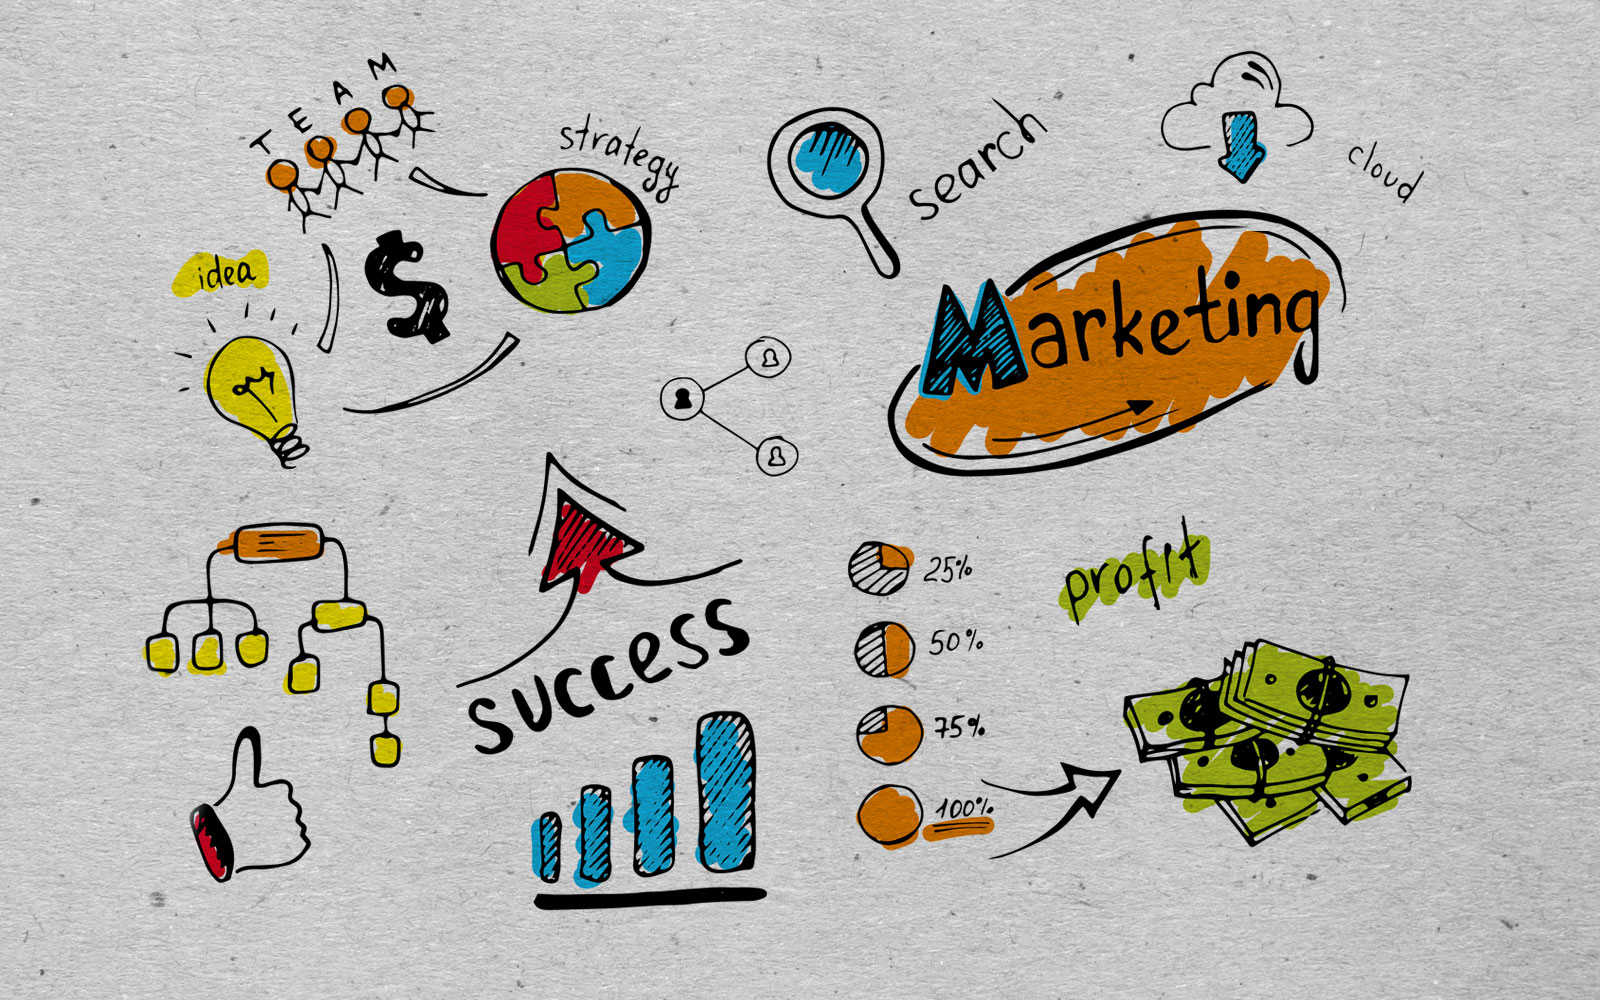 Marketing is changing… or is it?